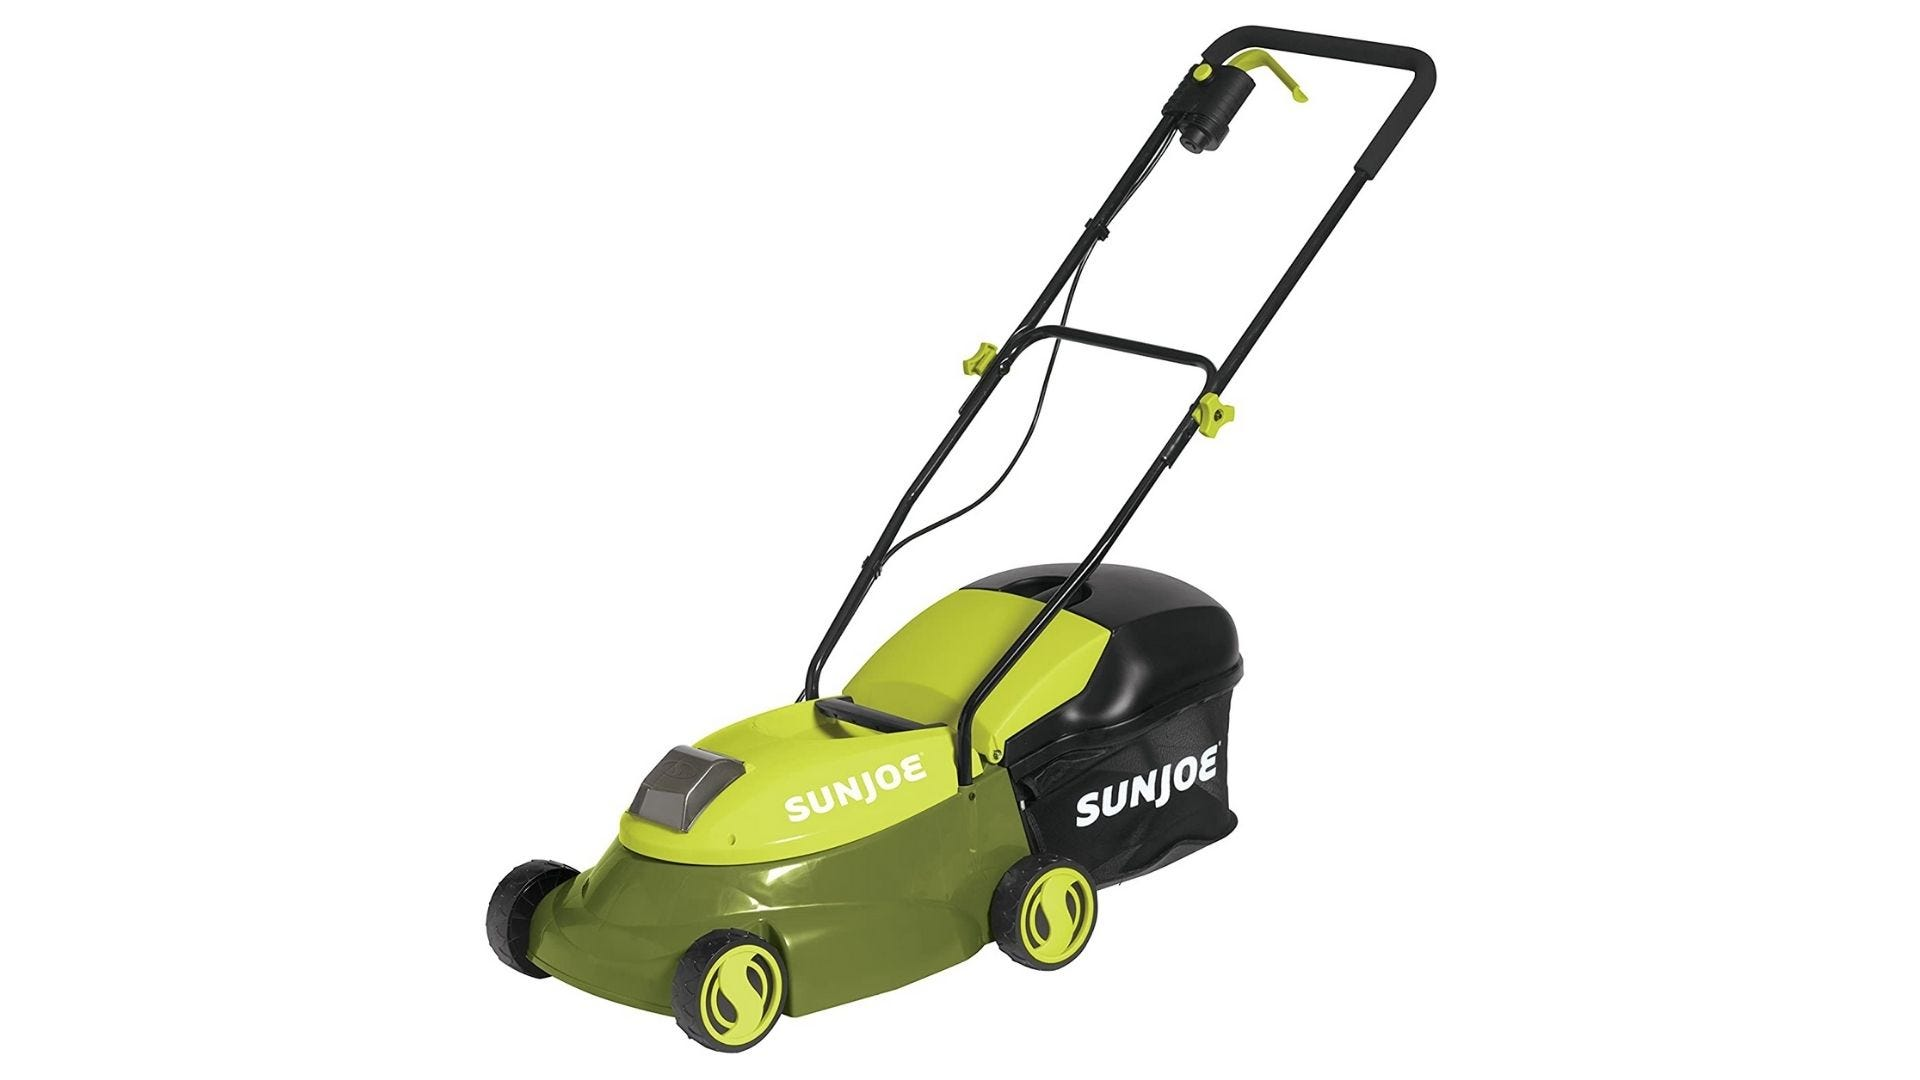 SunJoe 14 in. 28-Volt Cordless Walk Behind Push Mower Kit with 4.0 Ah Battery + Charger